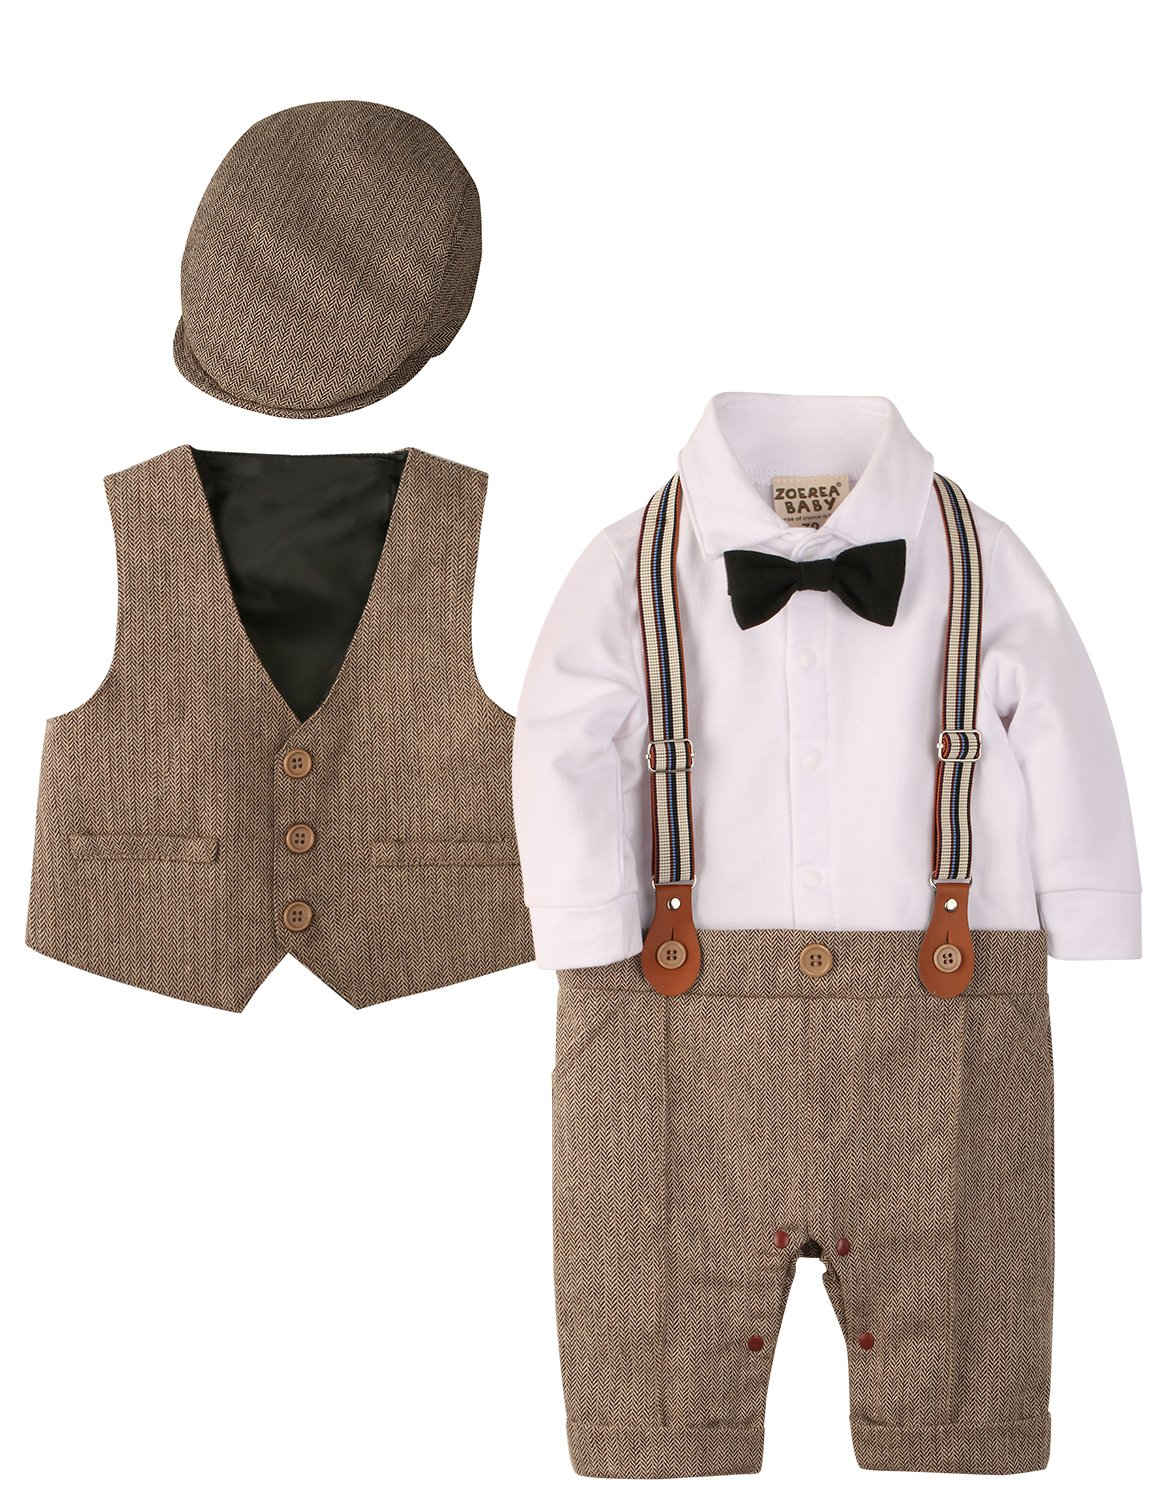 ZOEREA Baby Boy Outfits Set, 3pcs Long Sleeves Gentleman Jumpsuit & Vest Coat & Berets Hat with Bow Tie (Brown, Label 80)